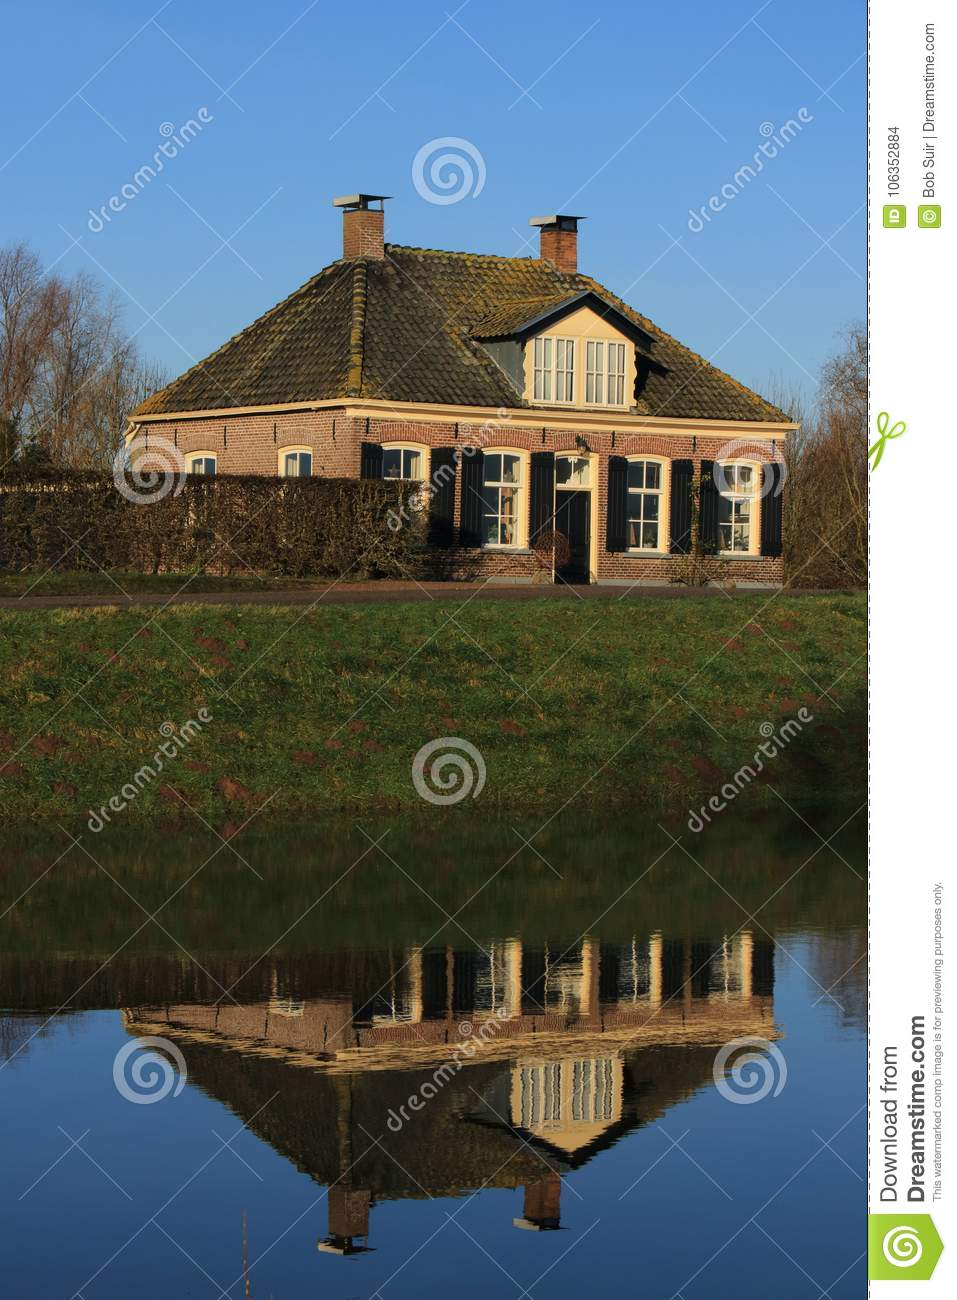 Dutch house mirrored in the water.